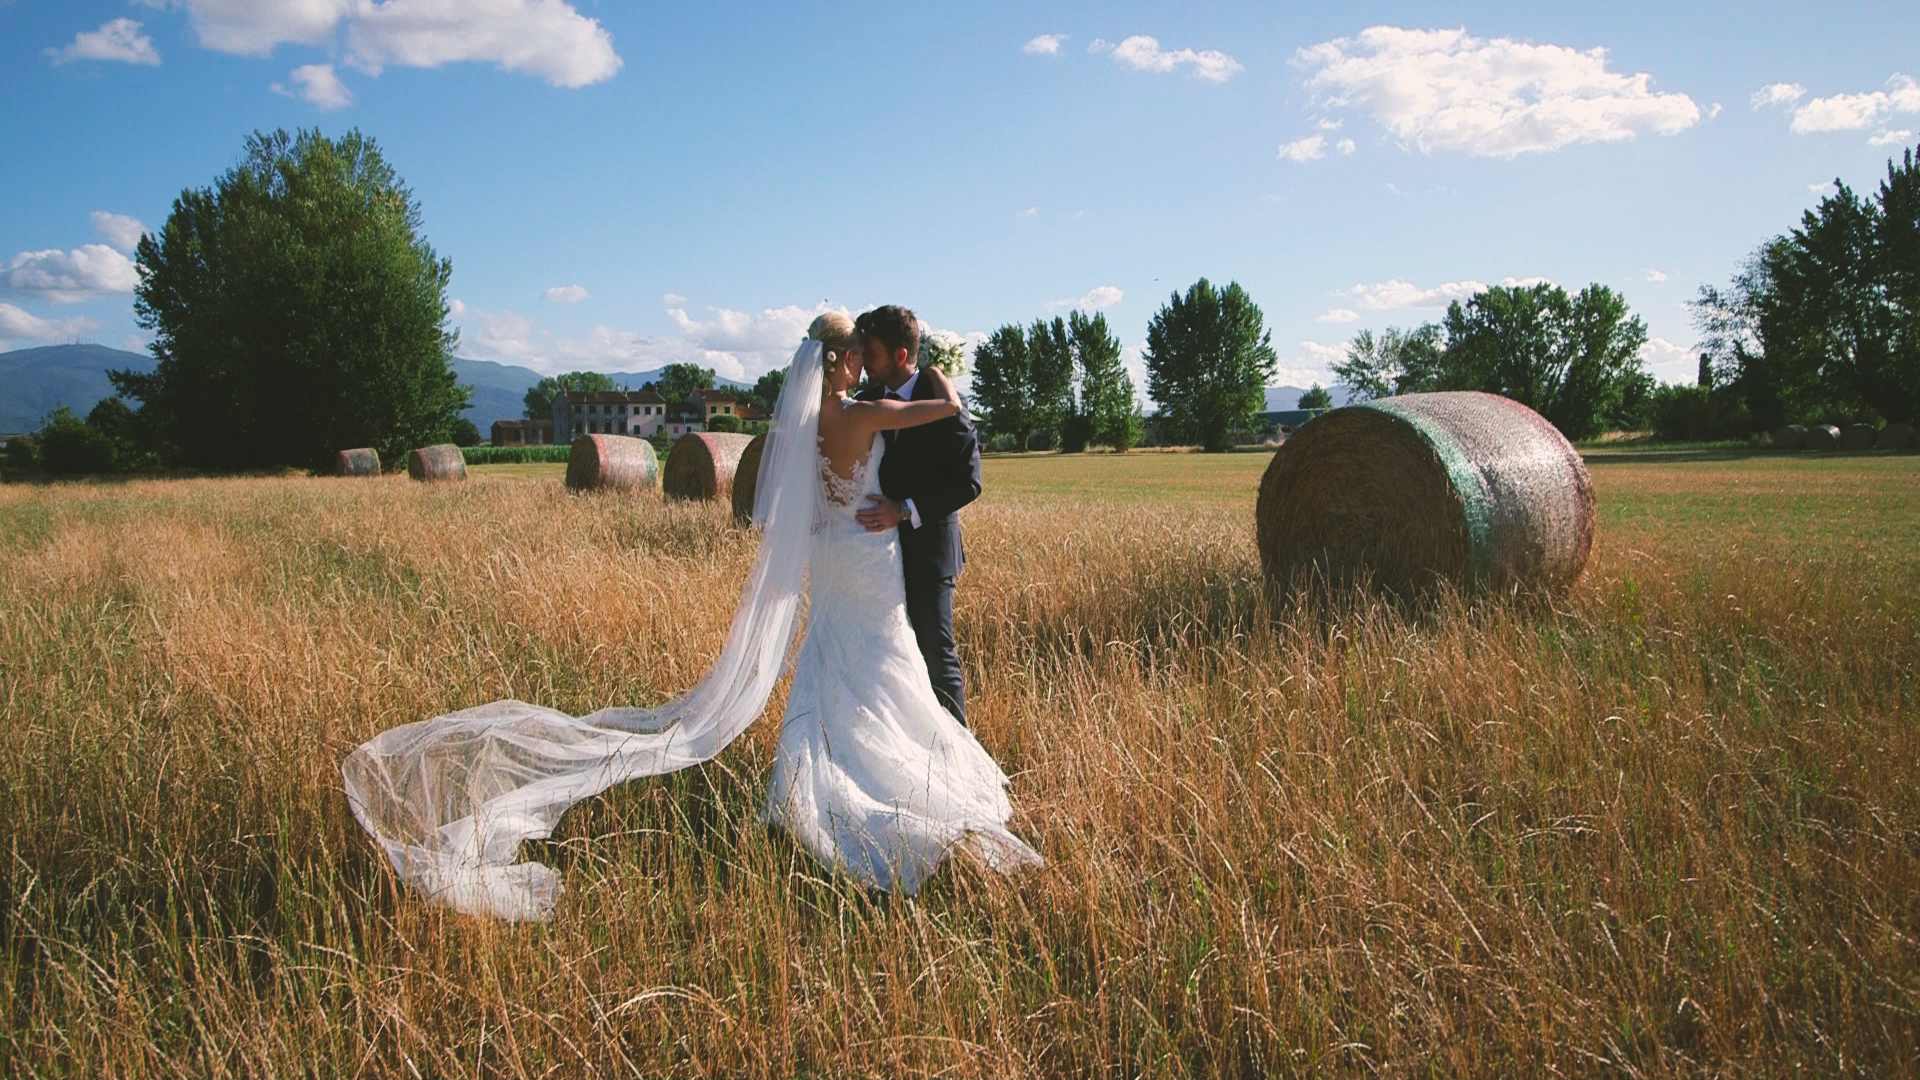 Marco  + Simona | Province of Lucca, Italy | Real Collegio